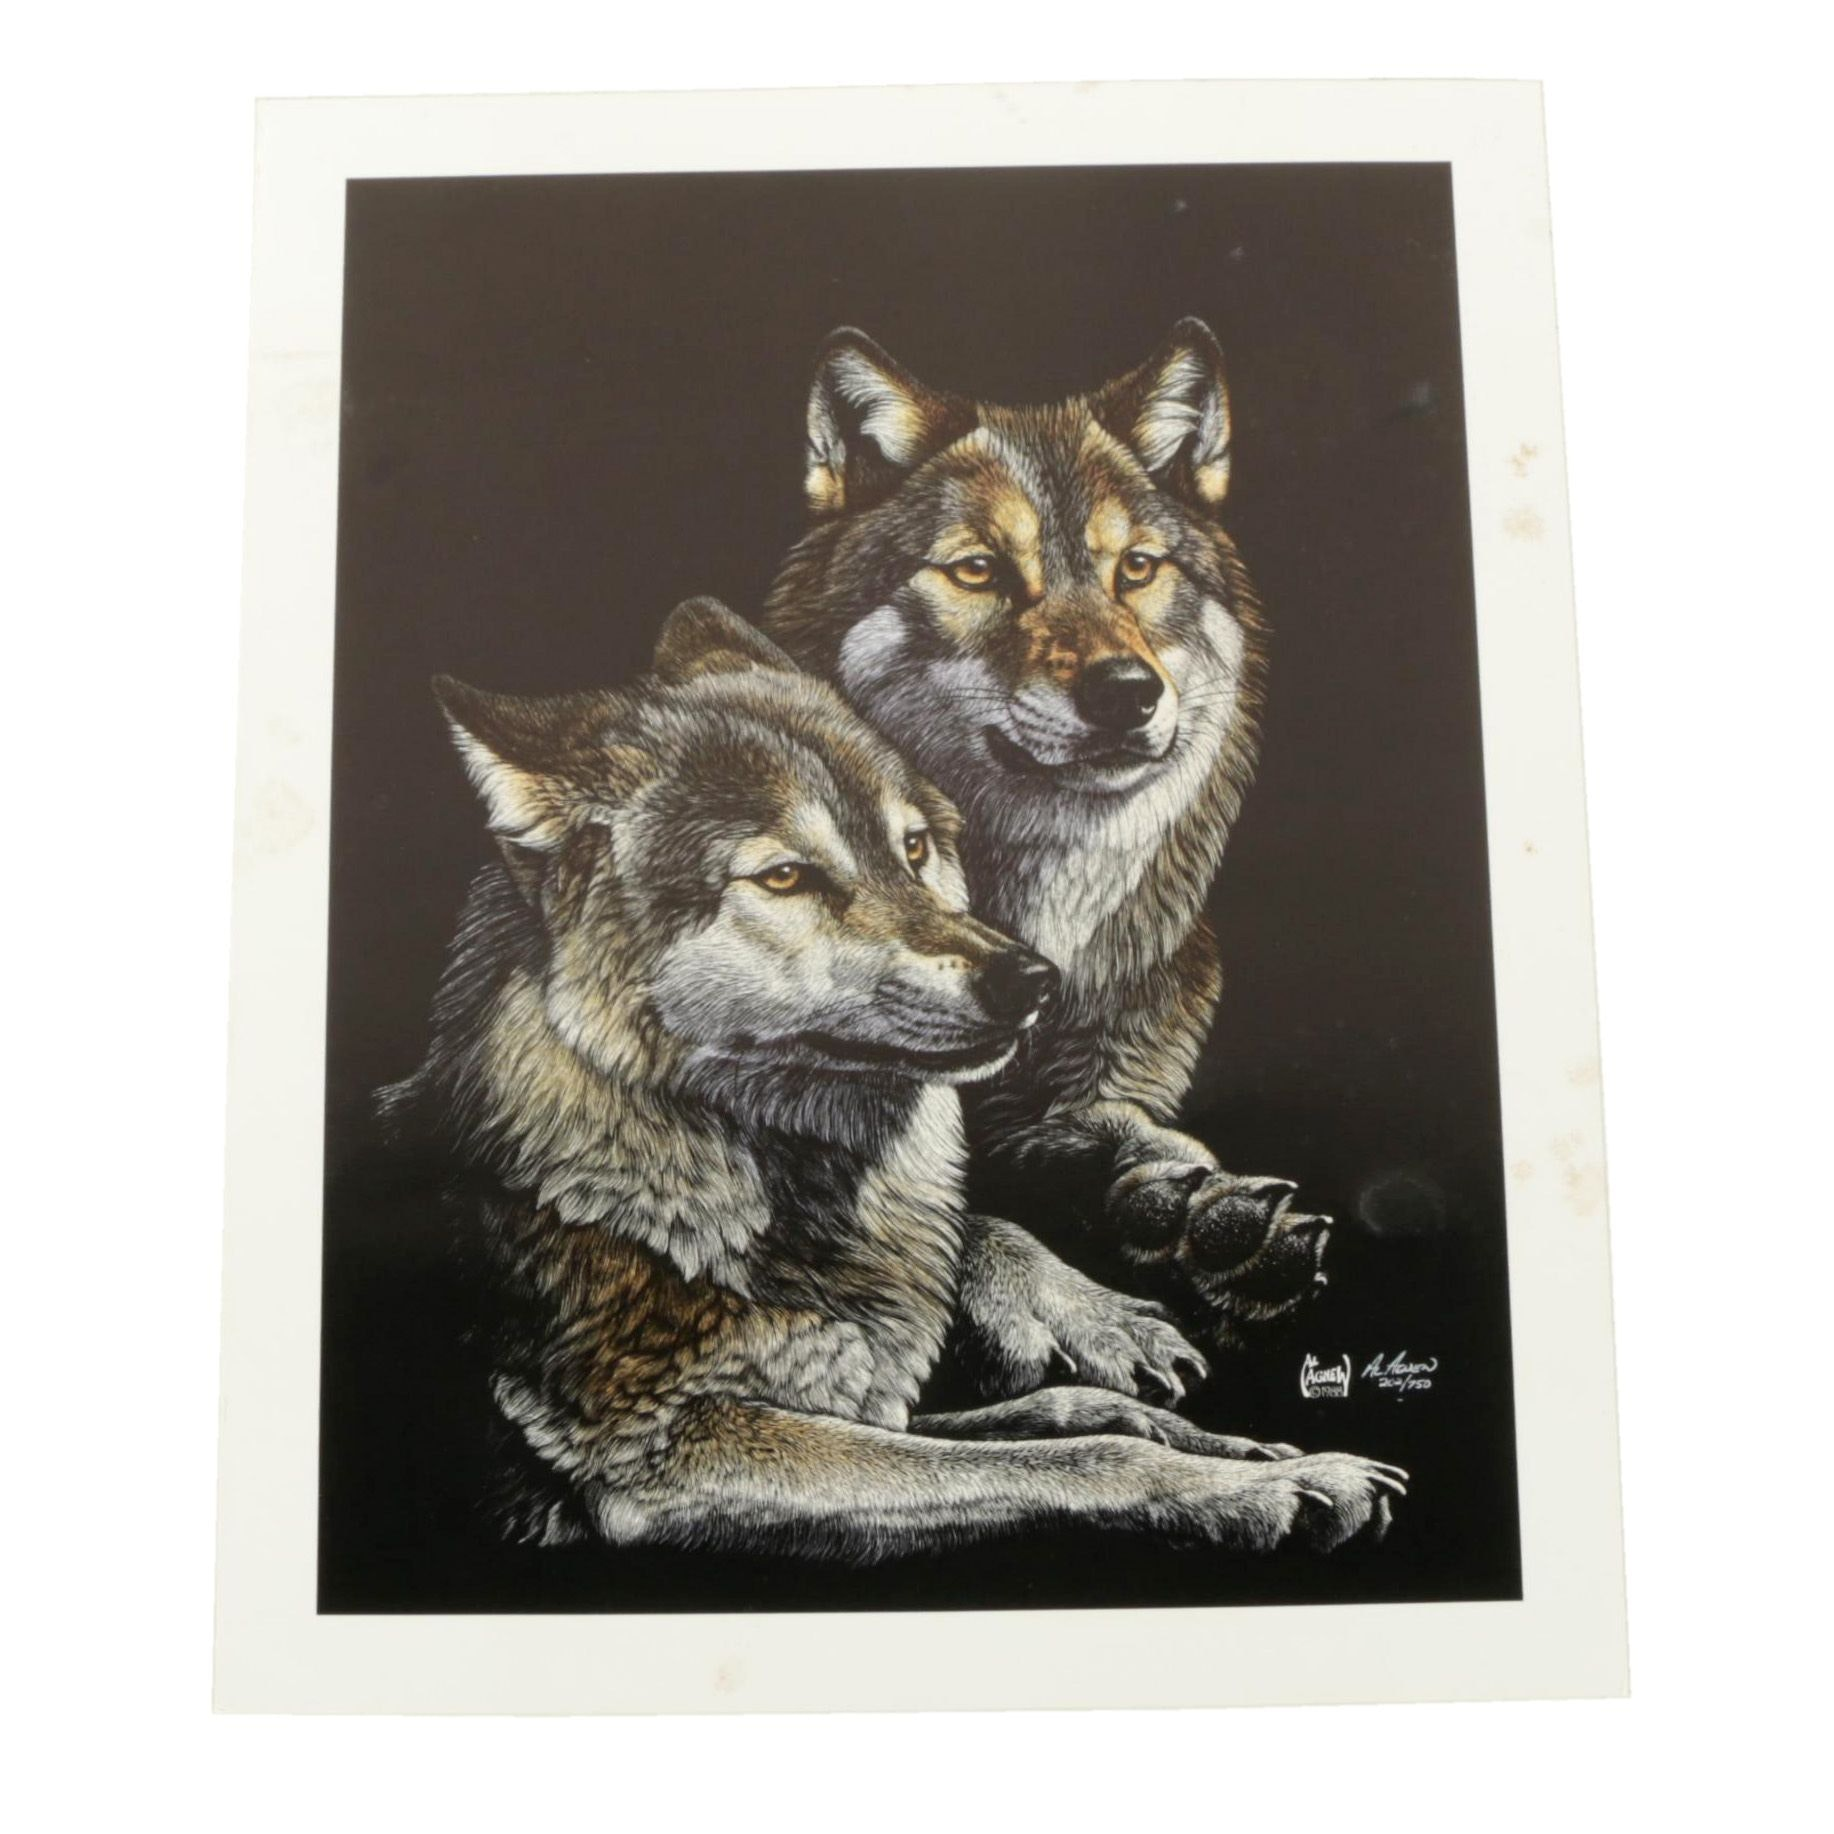 """Al Agnew 1988 Limited Edition Offset Lithograph on Paper """"Mates"""""""